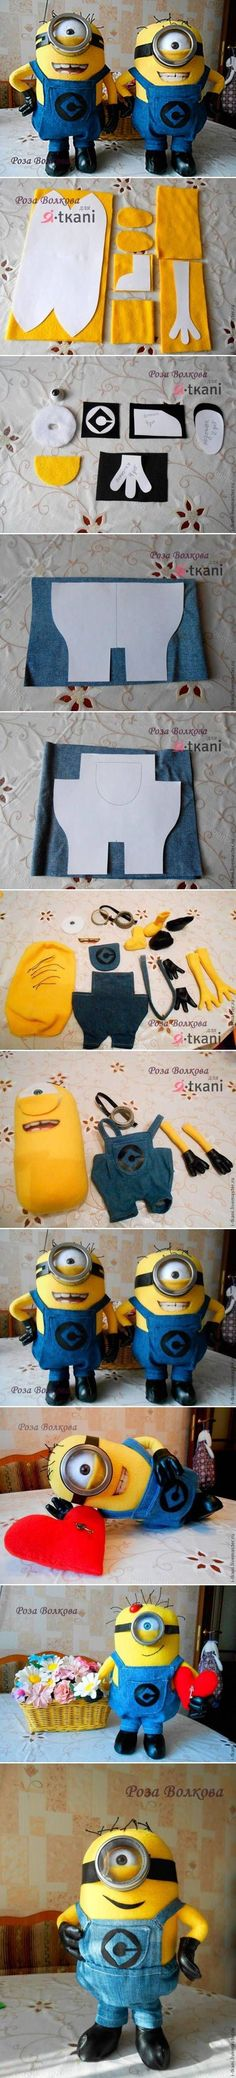 2 of Minion Dolls diy craft crafts craft ideas easy crafts diy ideas diy crafts sewing easy diy kids crafts kids diy craft gifts kids craft sewing ideas sewing crafts fun craft Kids Crafts, Felt Crafts, Craft Projects, Sewing Projects, Kids Diy, Craft Ideas, Sewing Ideas, Easy Crafts, Diy Ideas